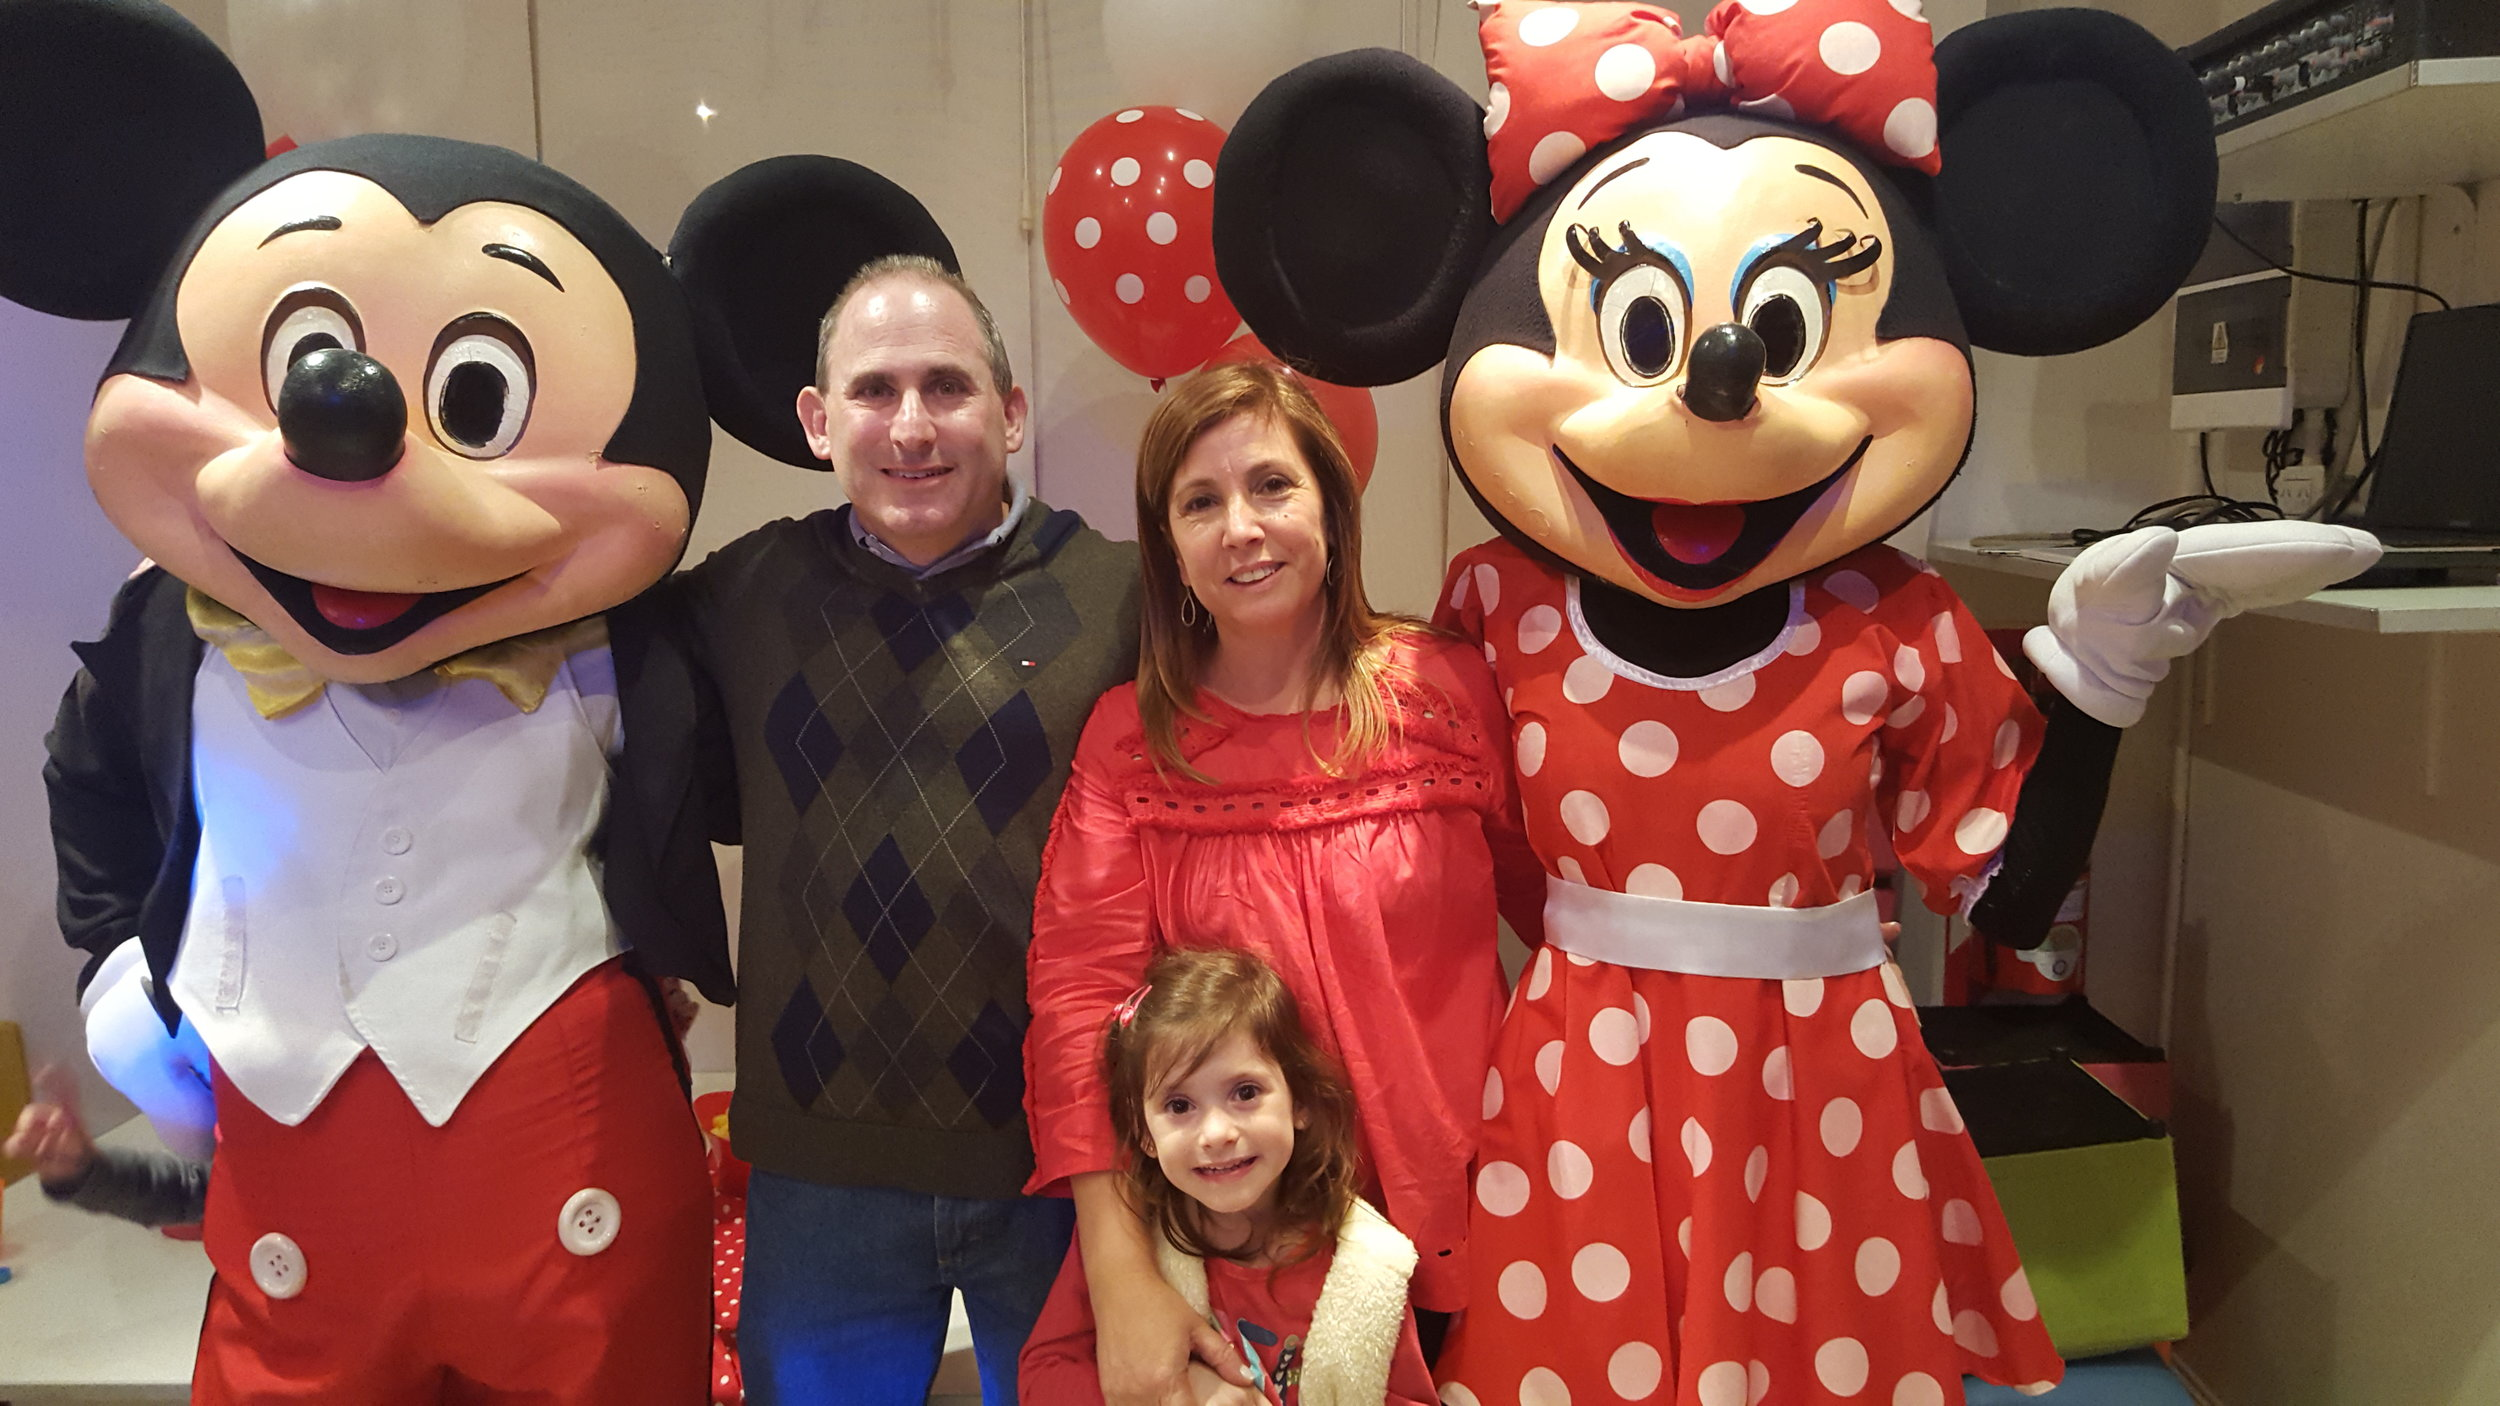 We loved meeting Mickey and Minnie!